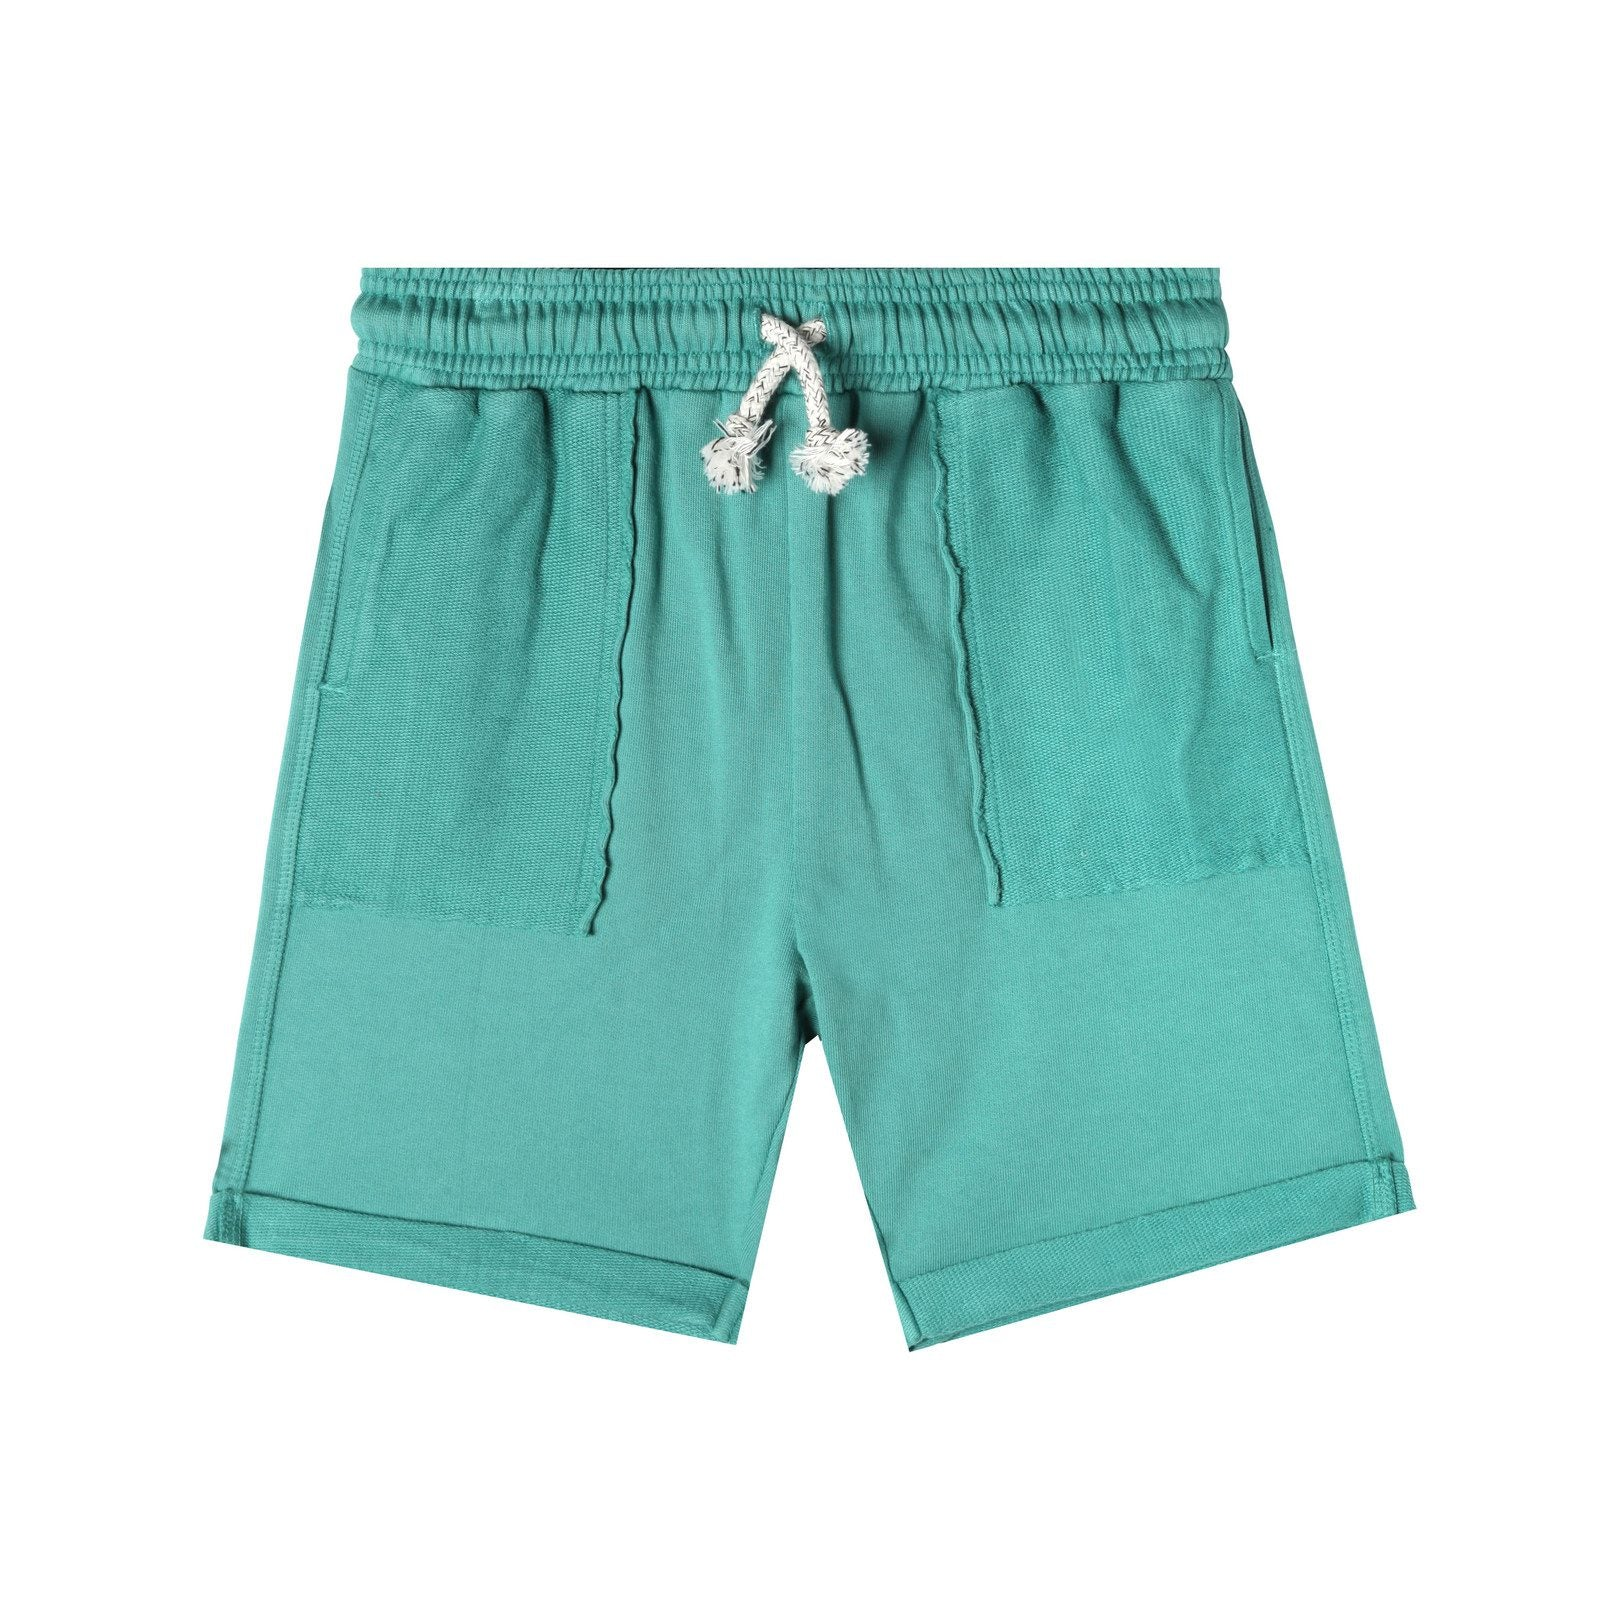 Art & Eden Organic Cotton Bermuda Short - Teal Green